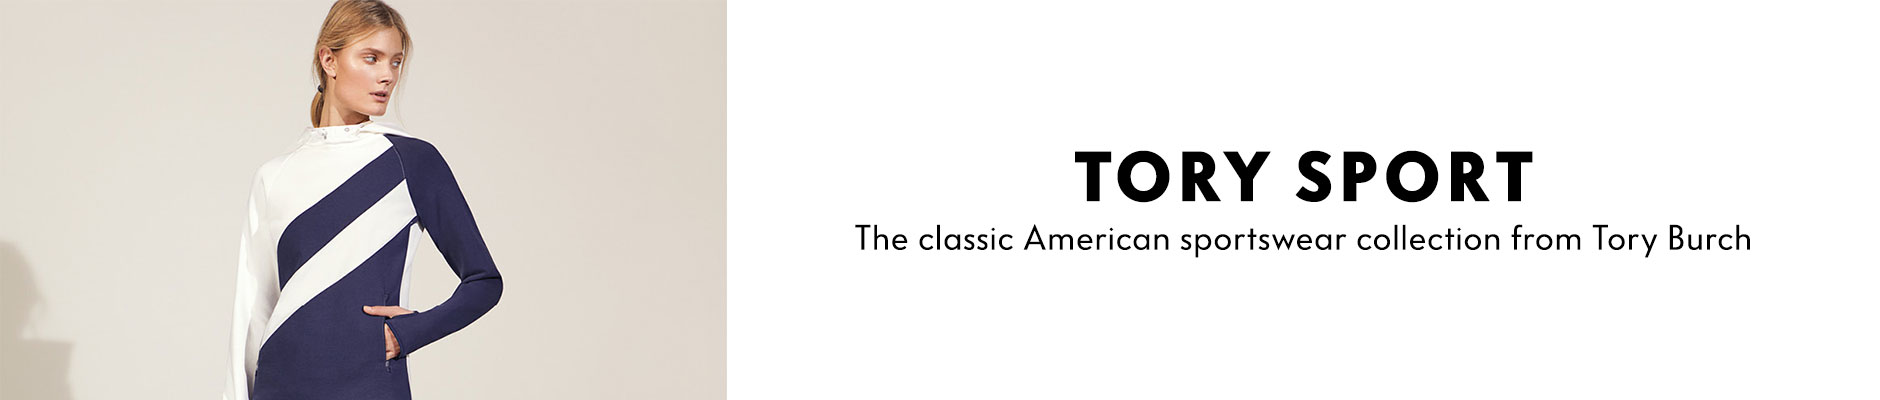 Tory Sport - the classic American sportswear collection from Tory Burch